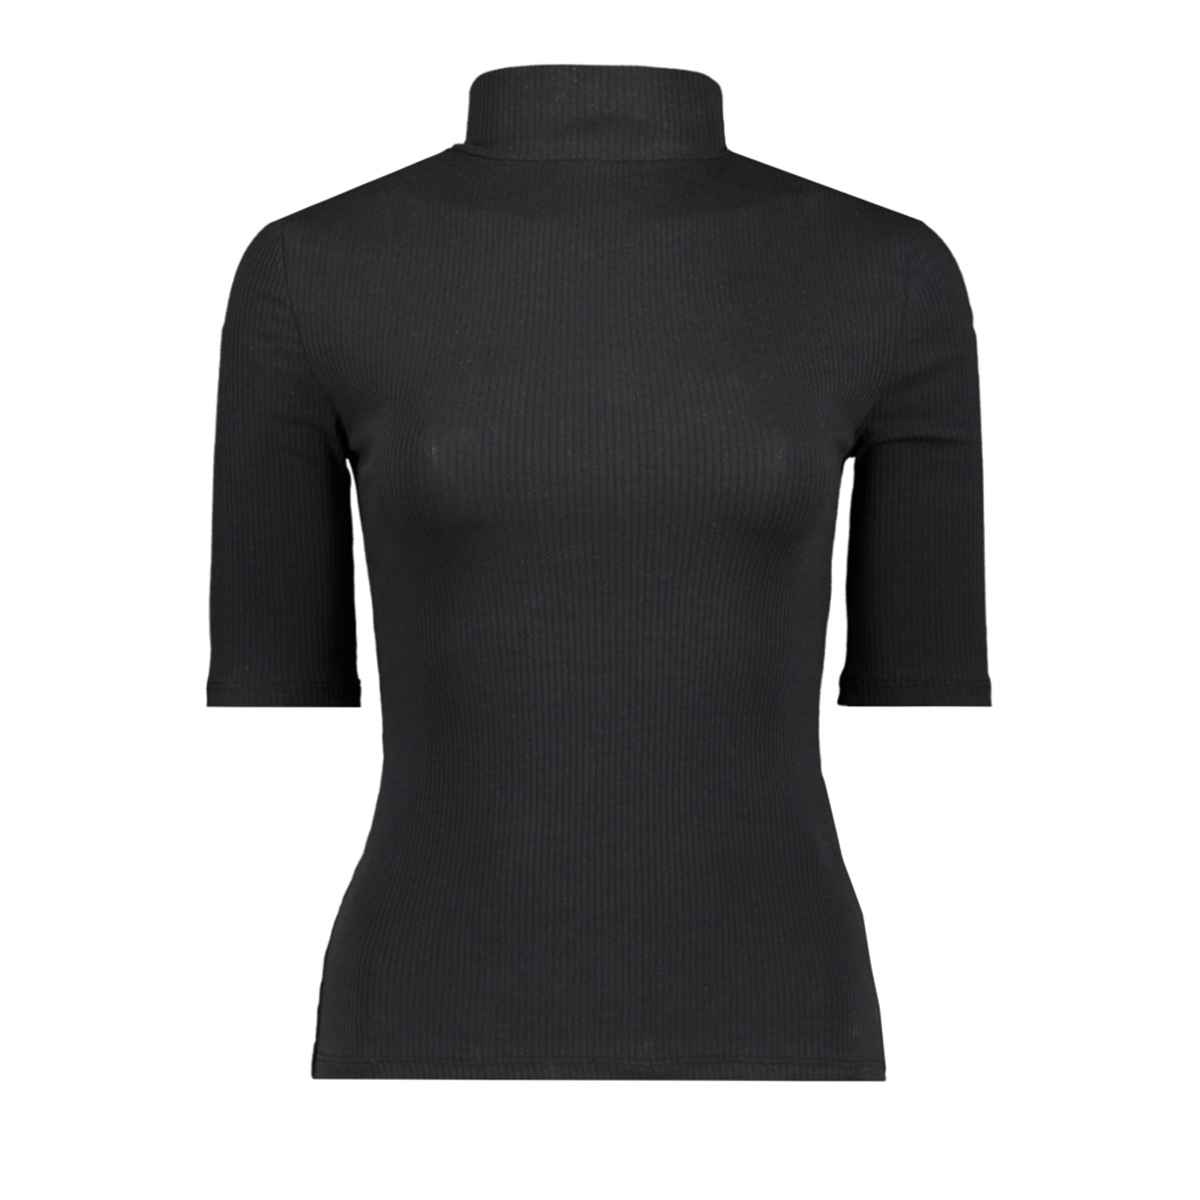 vmisla 2/4 high neck top ga vo 10229752 vero moda t-shirt black